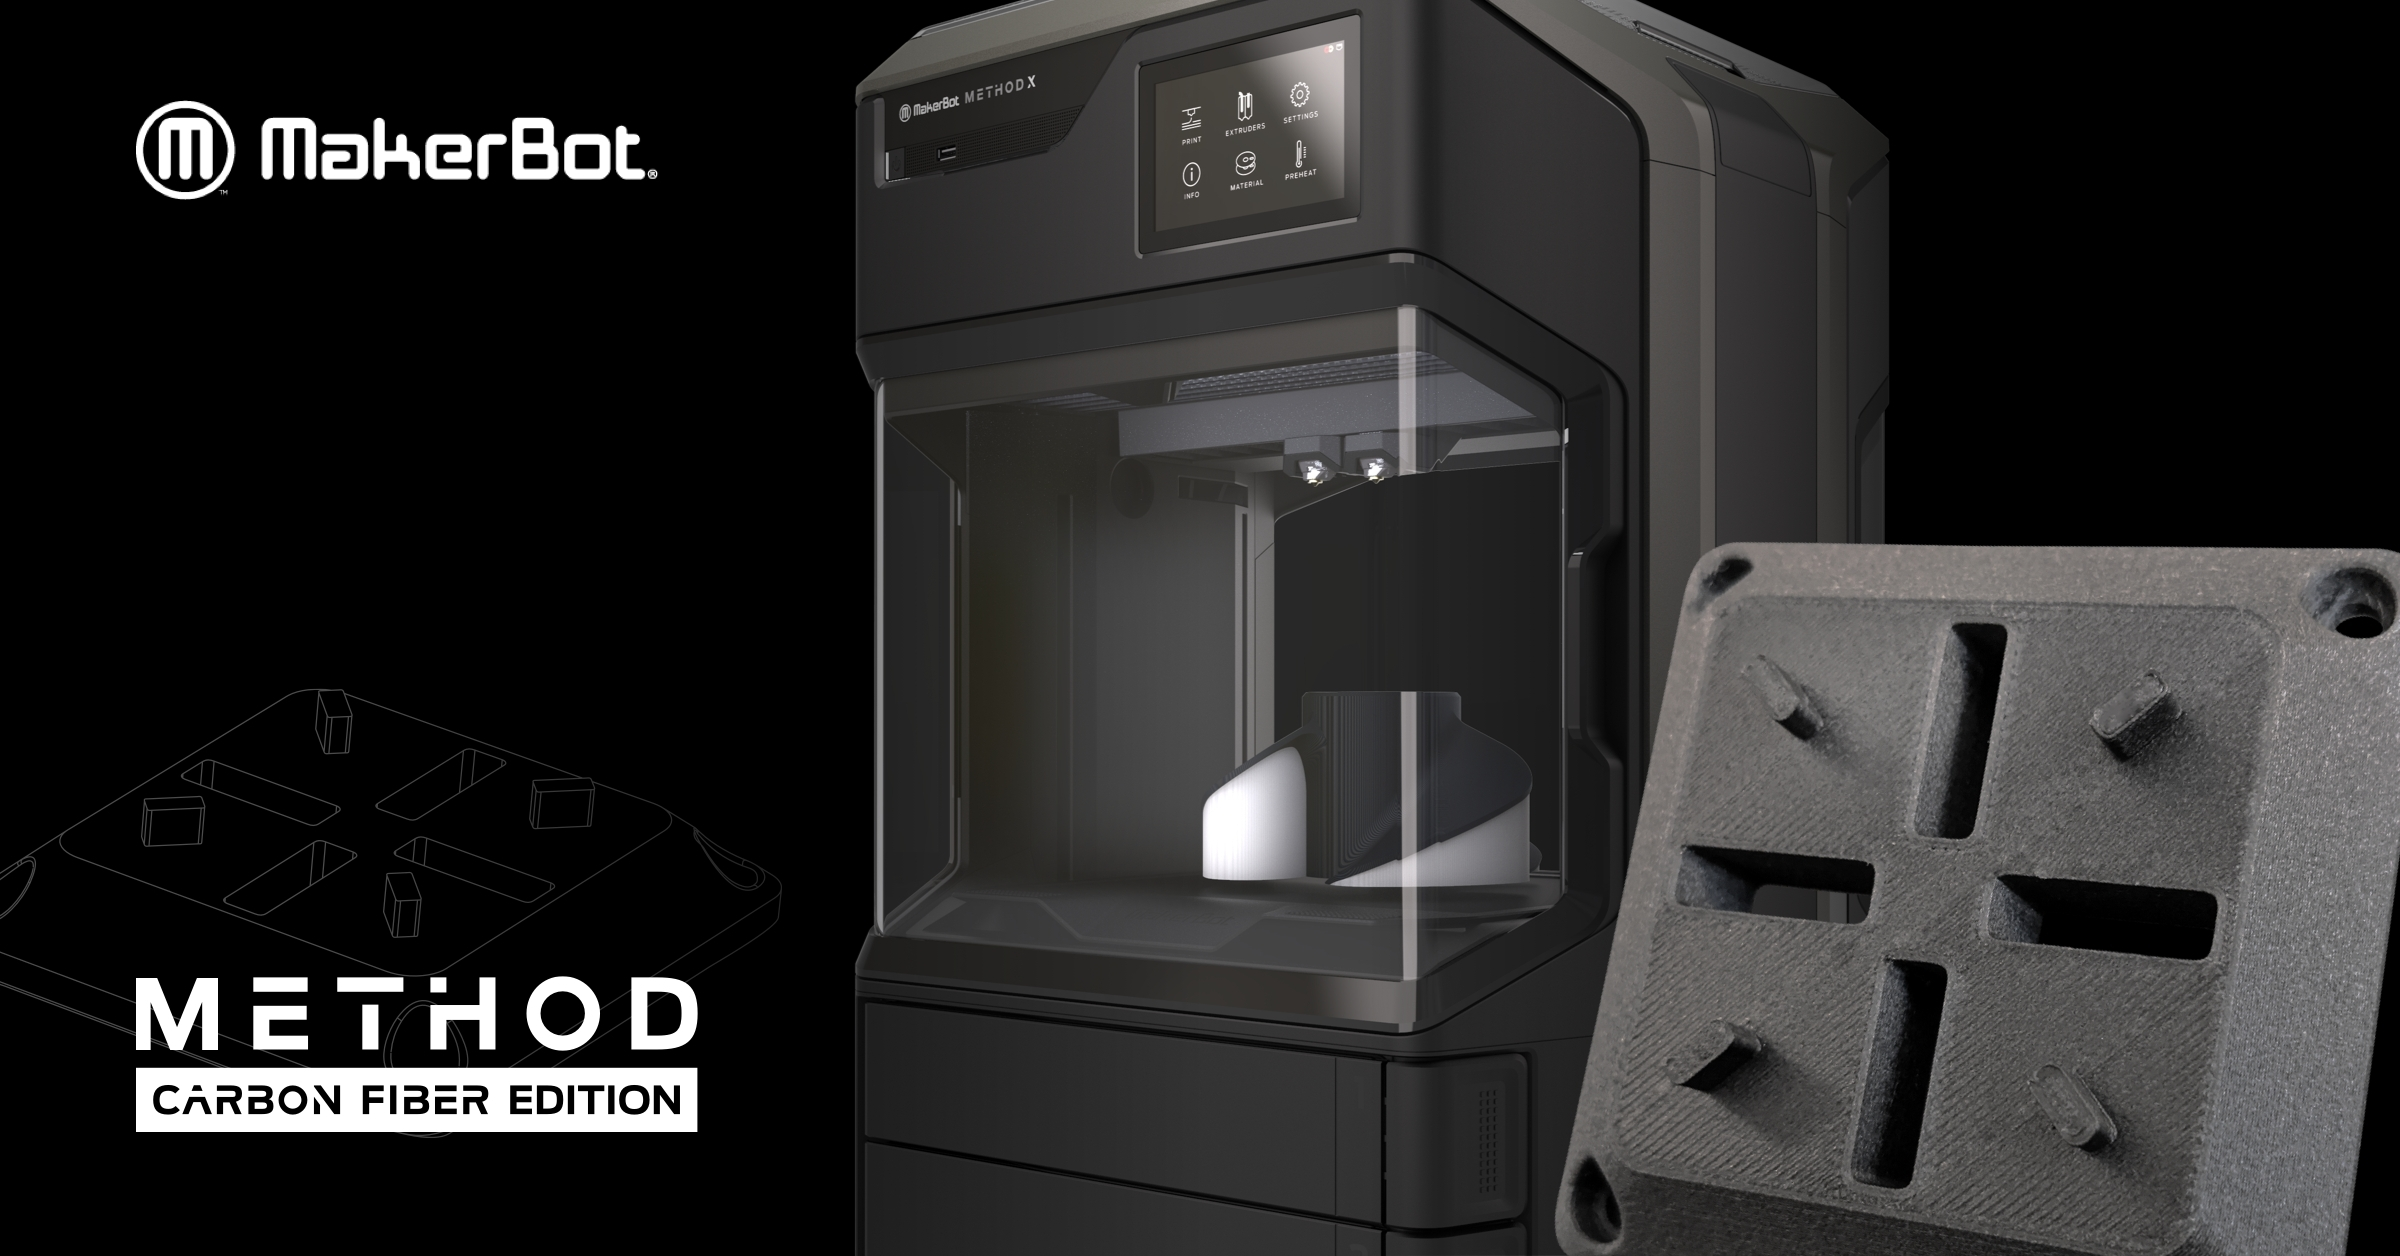 Makerbot's latest desktop 3D printer is the first to be able to print in carbon fiber. Photo via Makerbot.